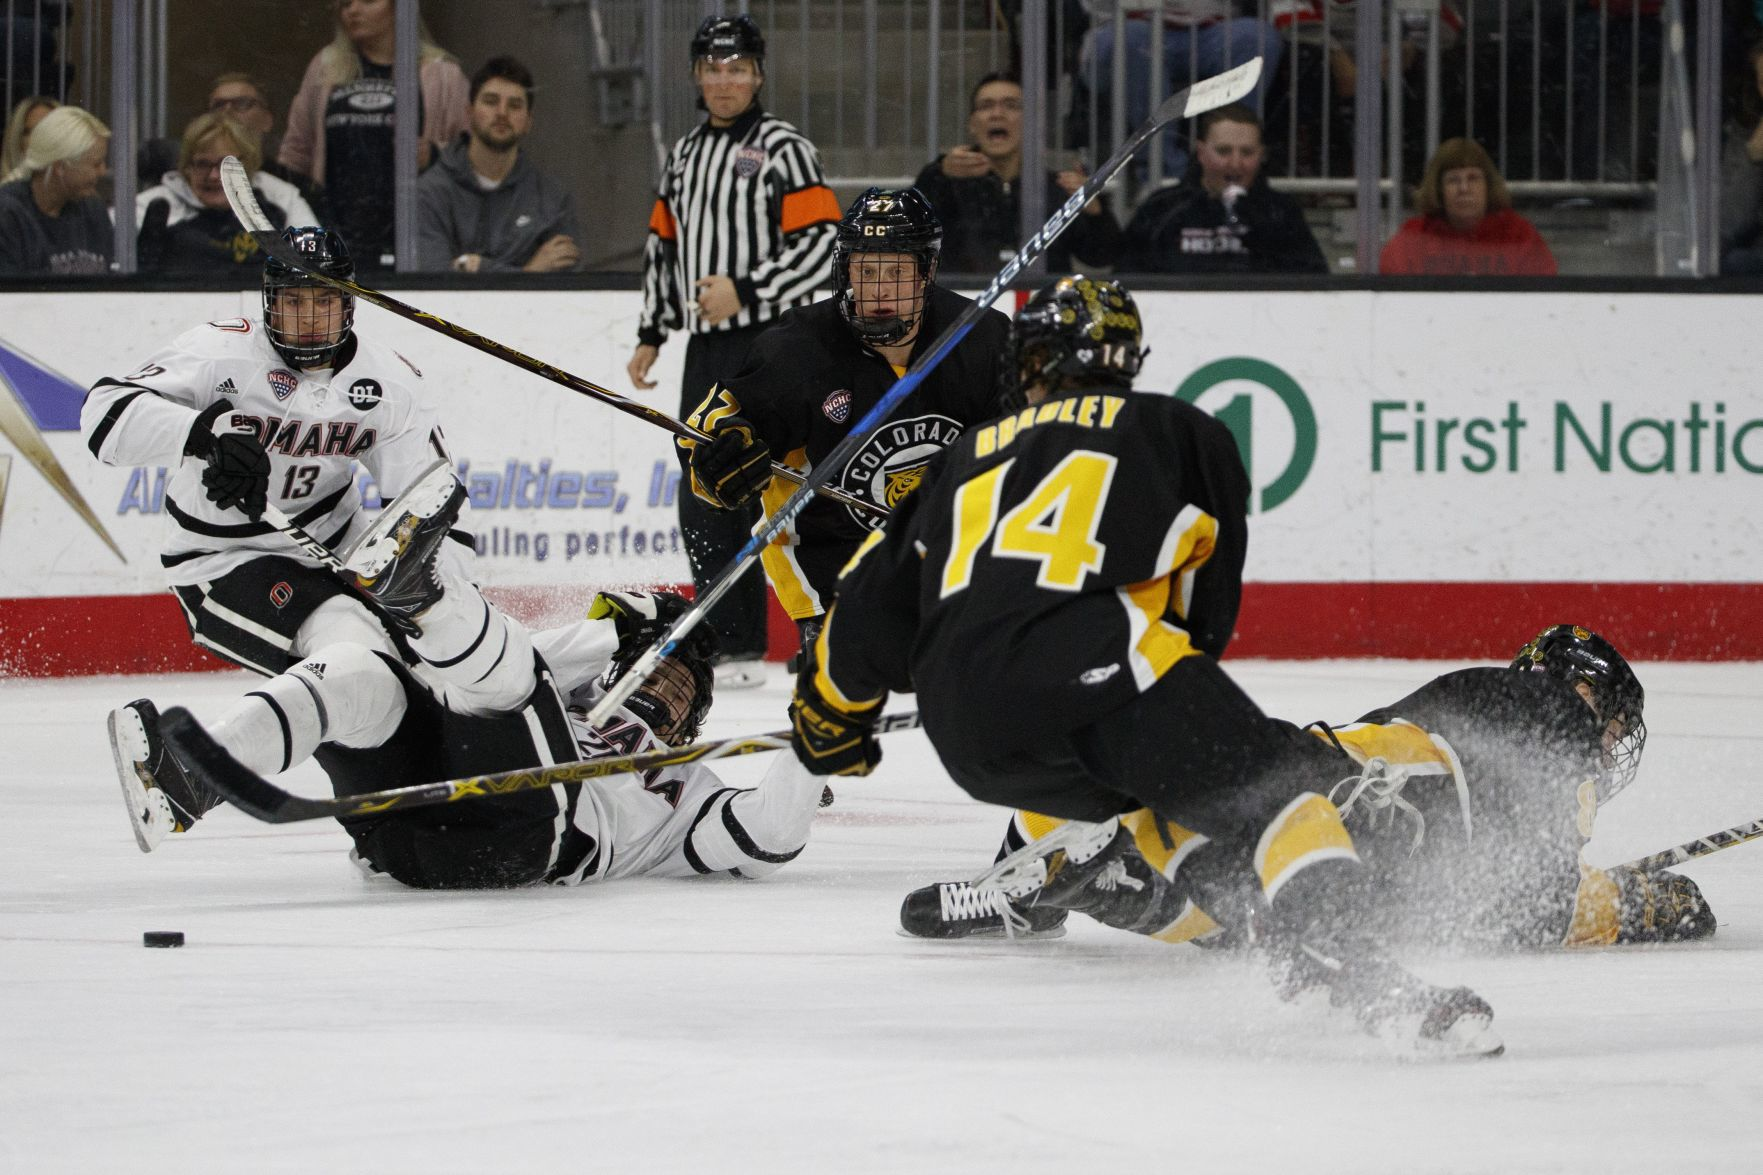 NCHC: No. 14 UNO Ties With Colorado College On Senior Night - Tigers Score In OT For Bonus Point